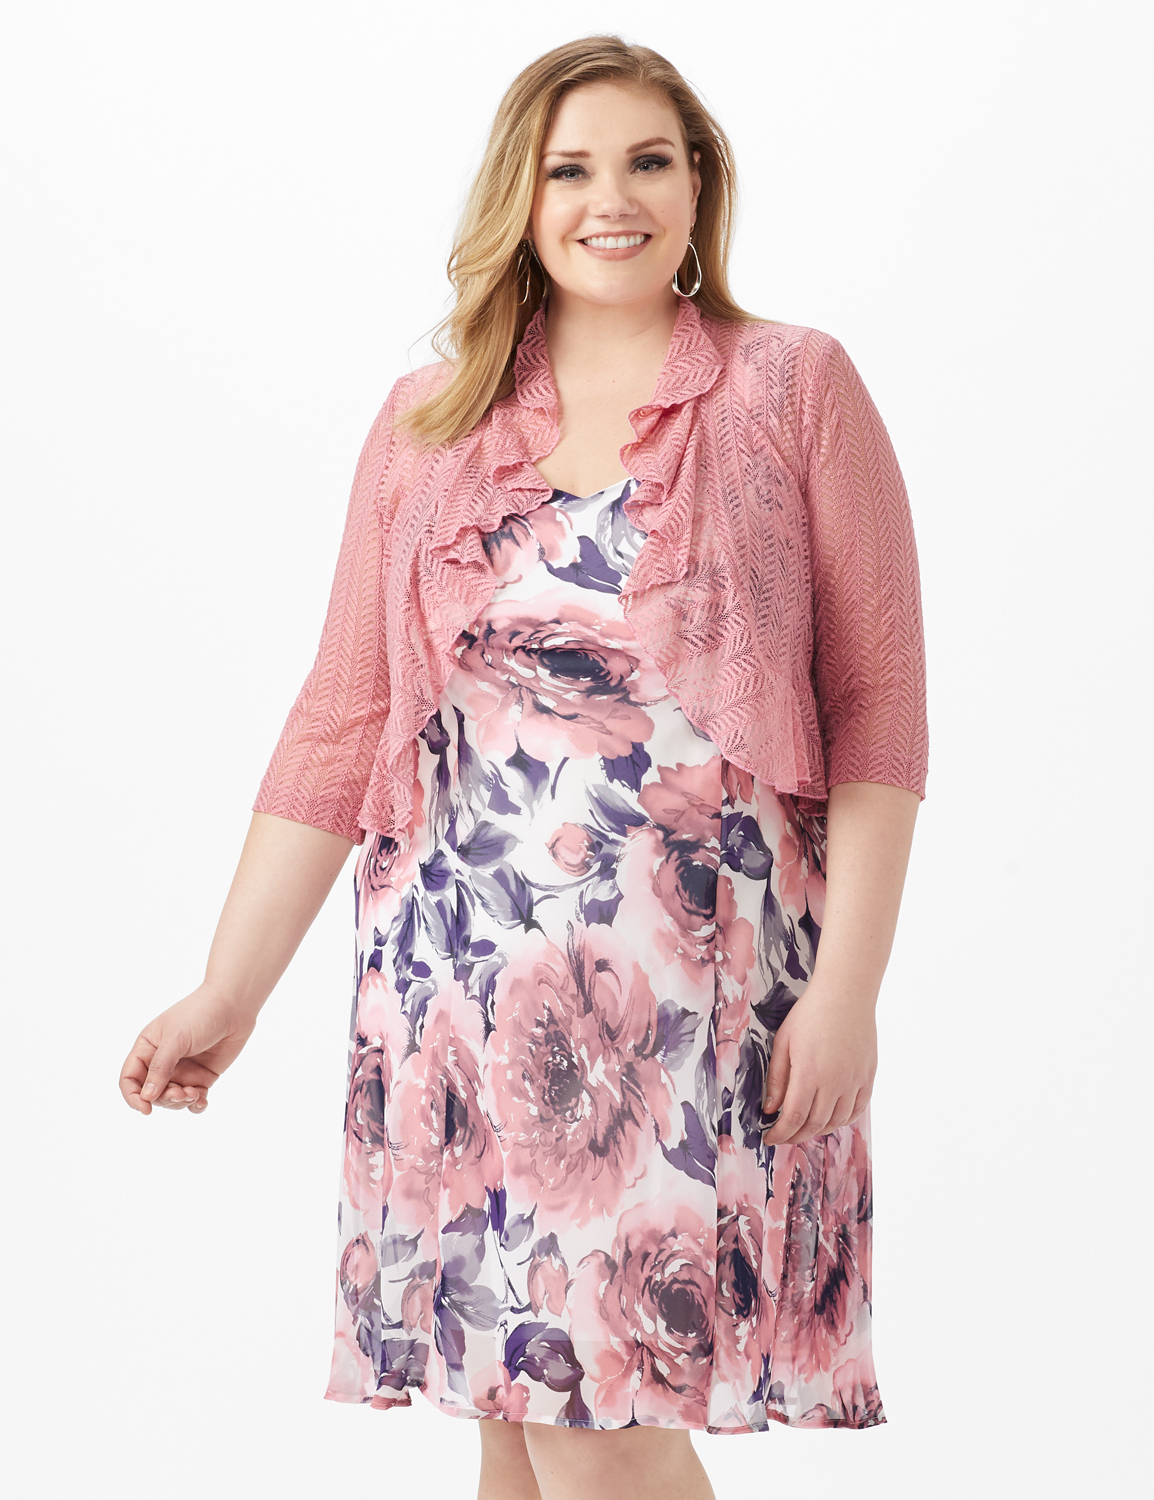 Floral Chiffon  Dress with Lace Shrug -Ivory/Mauve - Front